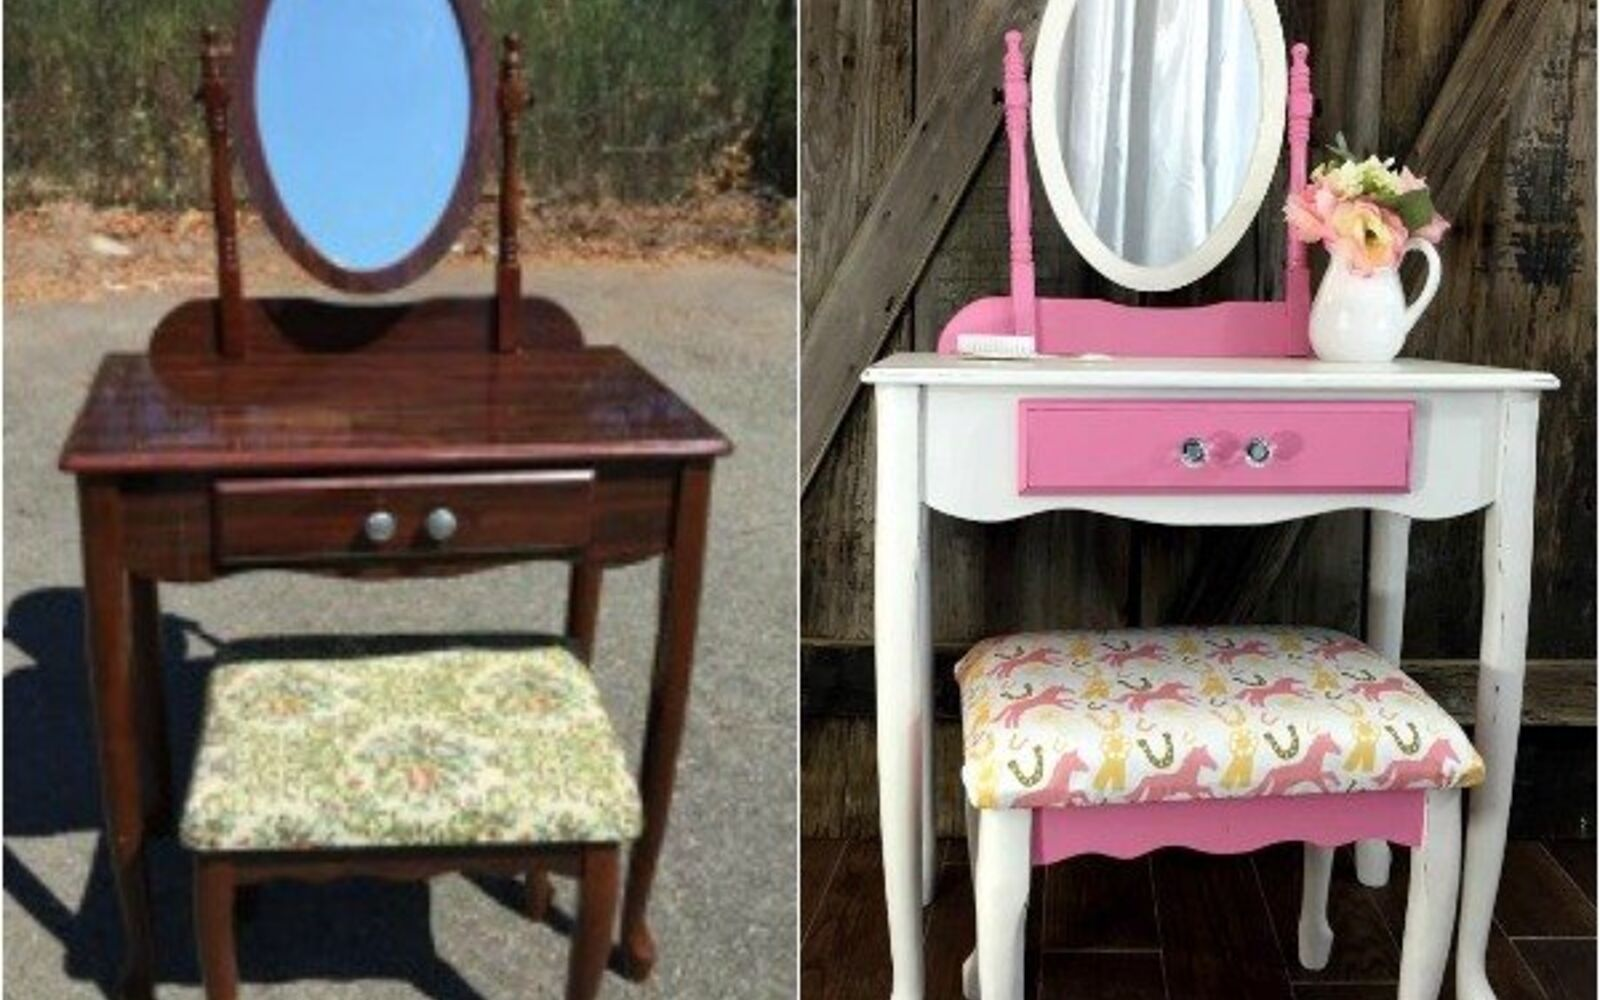 s 14 shocking furniture transformations using fabric, painted furniture, reupholster, An Outdated Vanity With a Fresh New Face